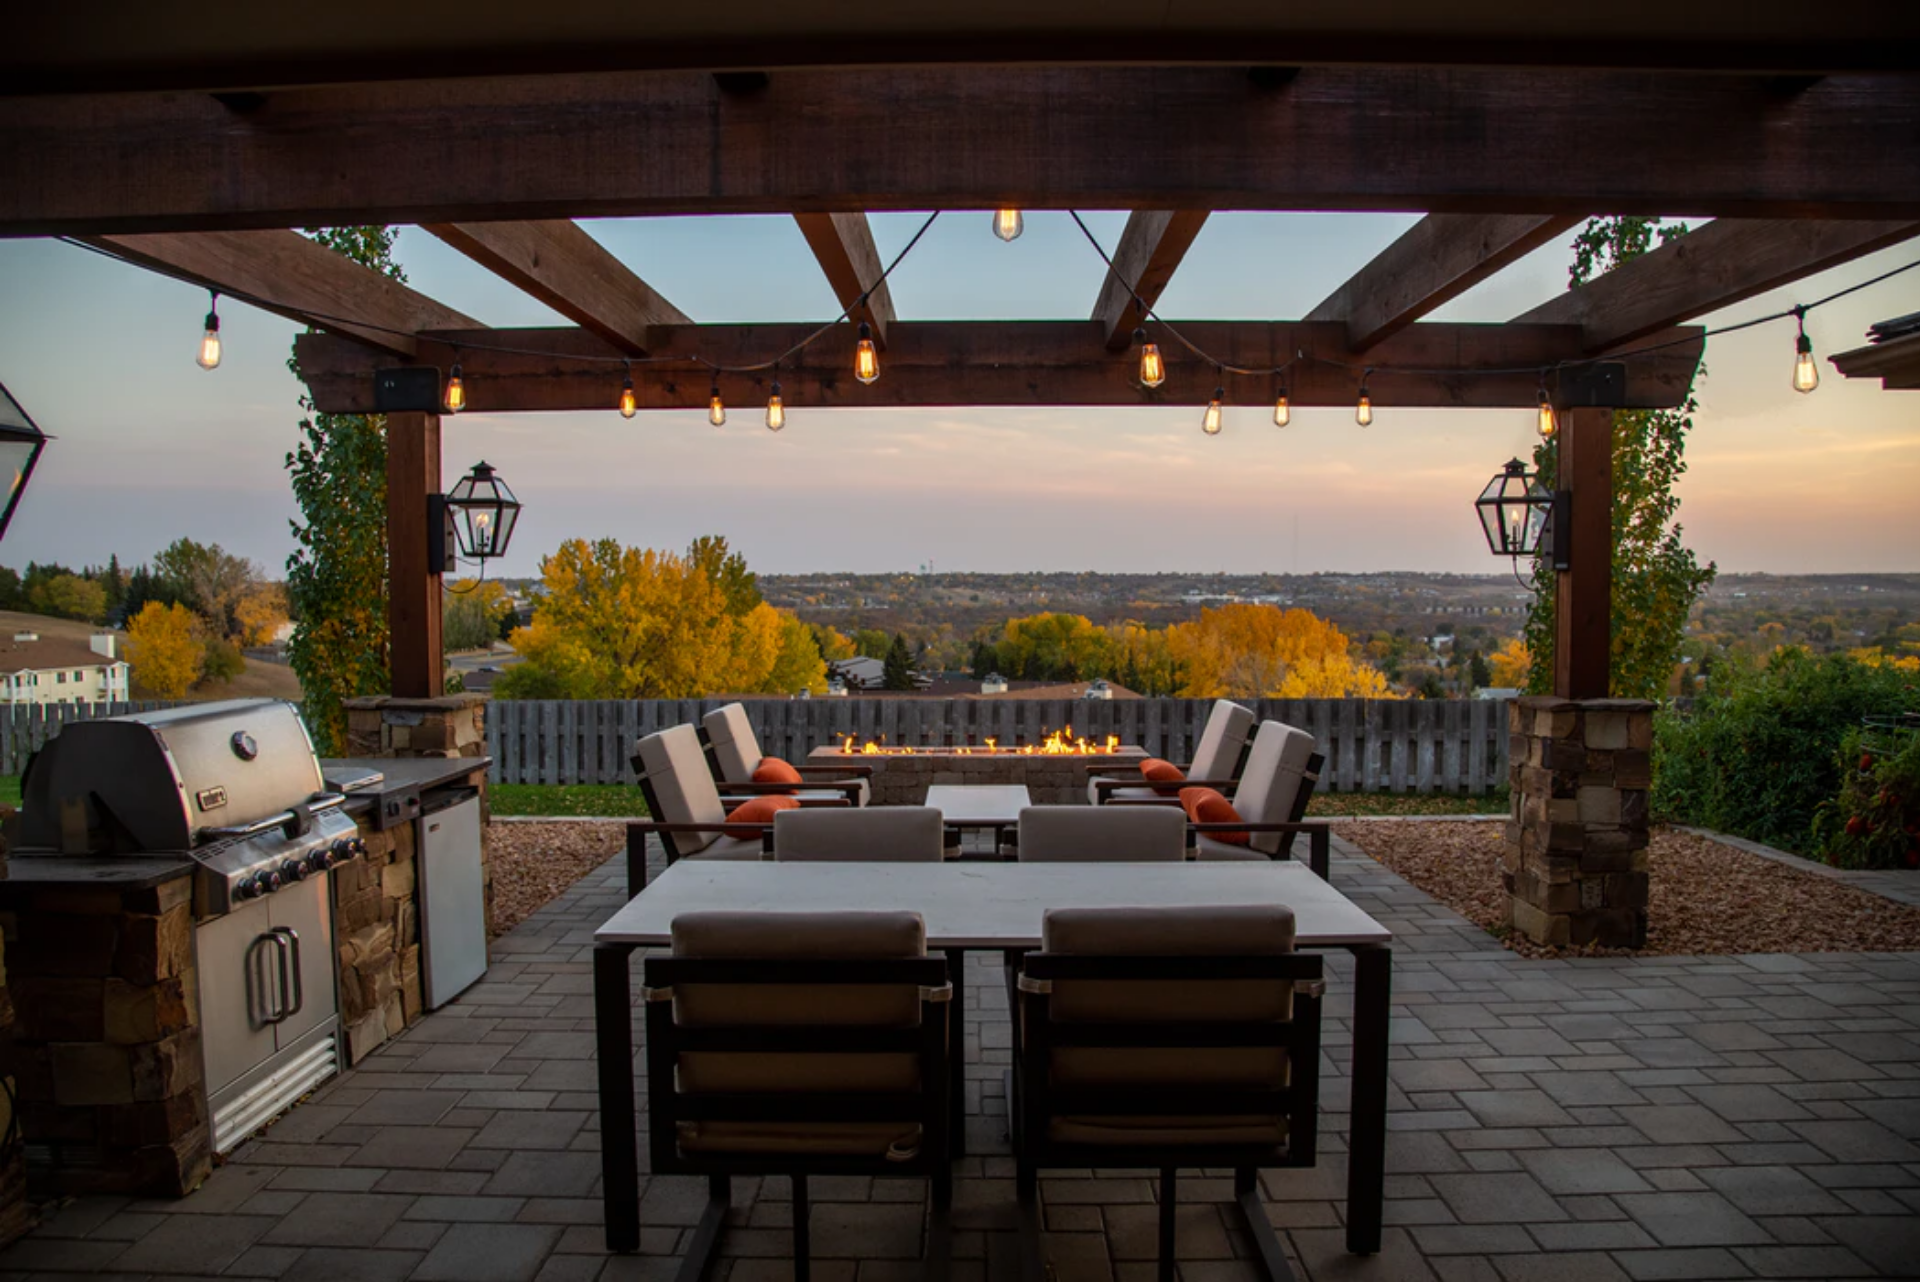 view of backyard home landscape under pergola with outdoor kitchen and dinning area